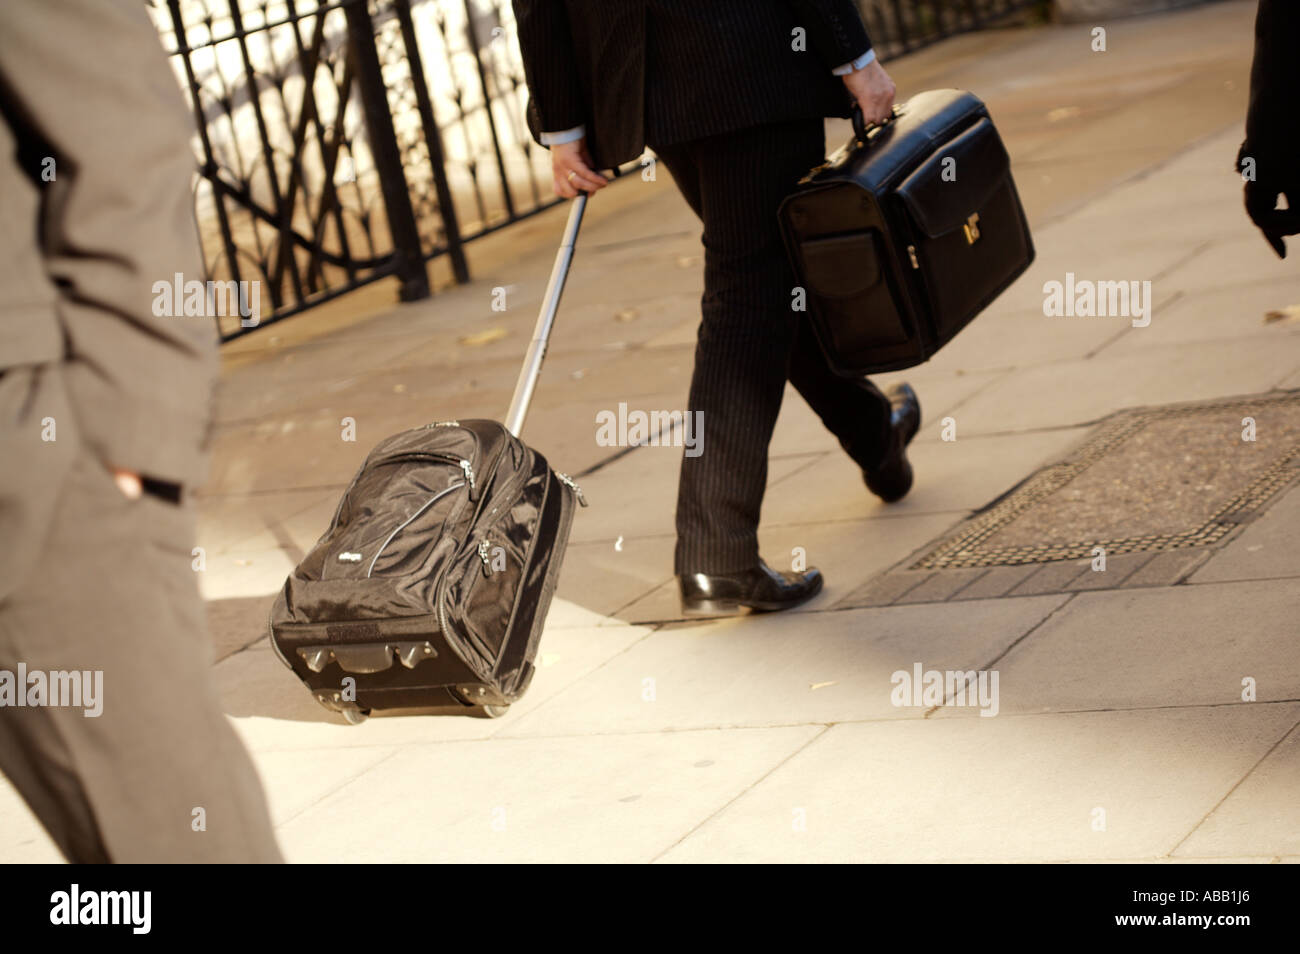 Businessman With Luggage - Stock Image